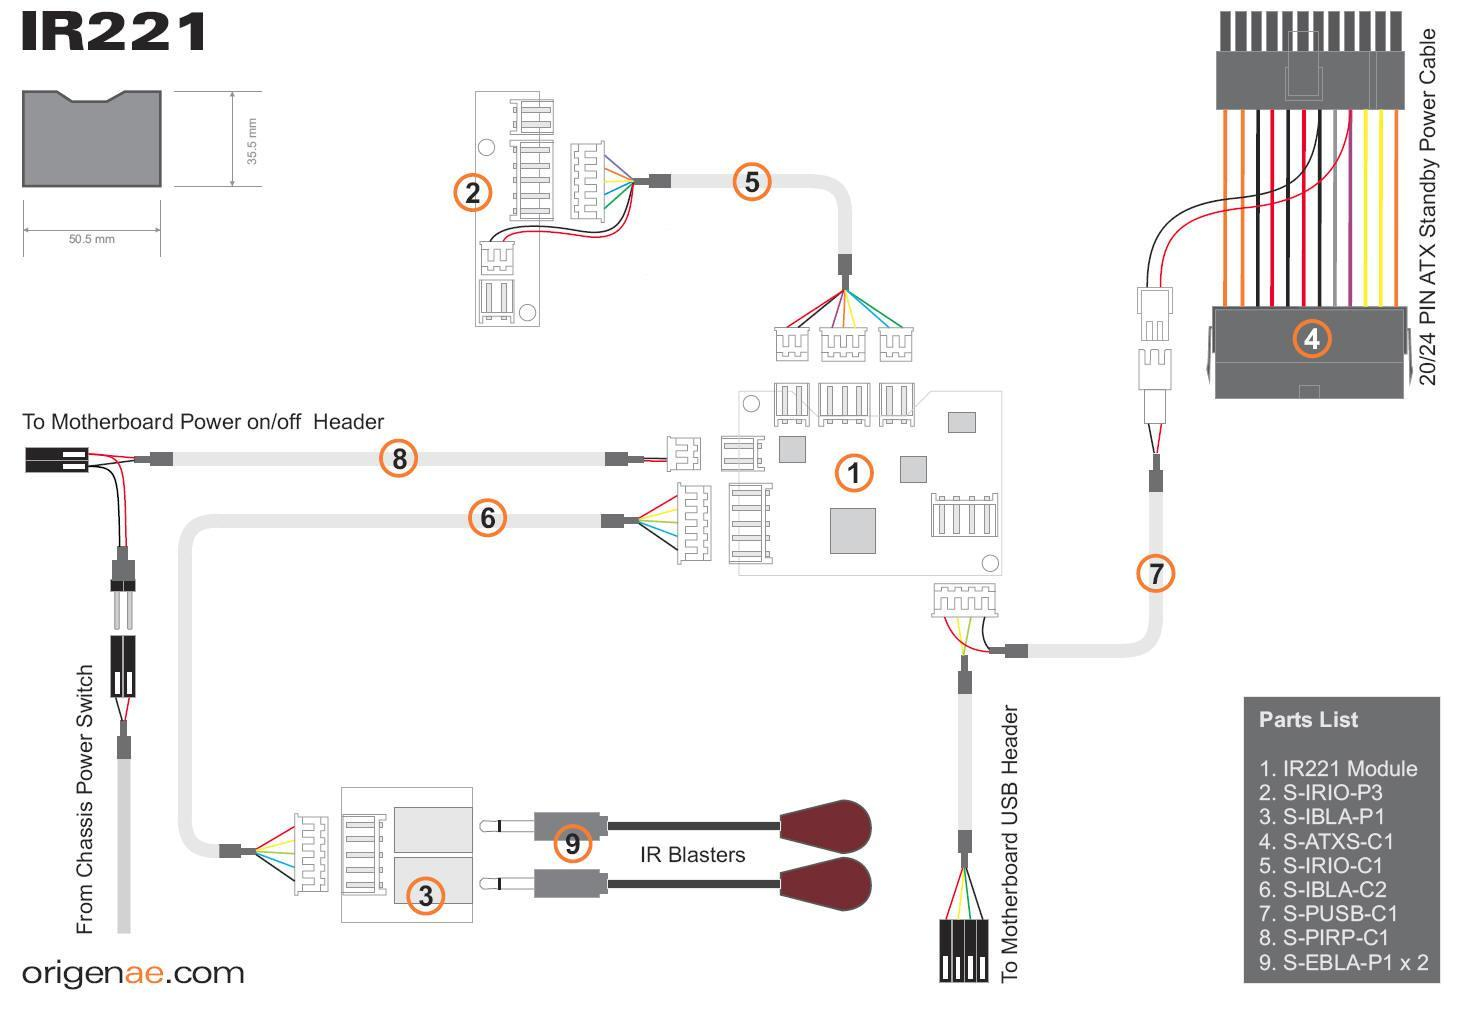 Usb Wiring Diagram Power | Best Wiring Library - Usb Wiring Diagram Power